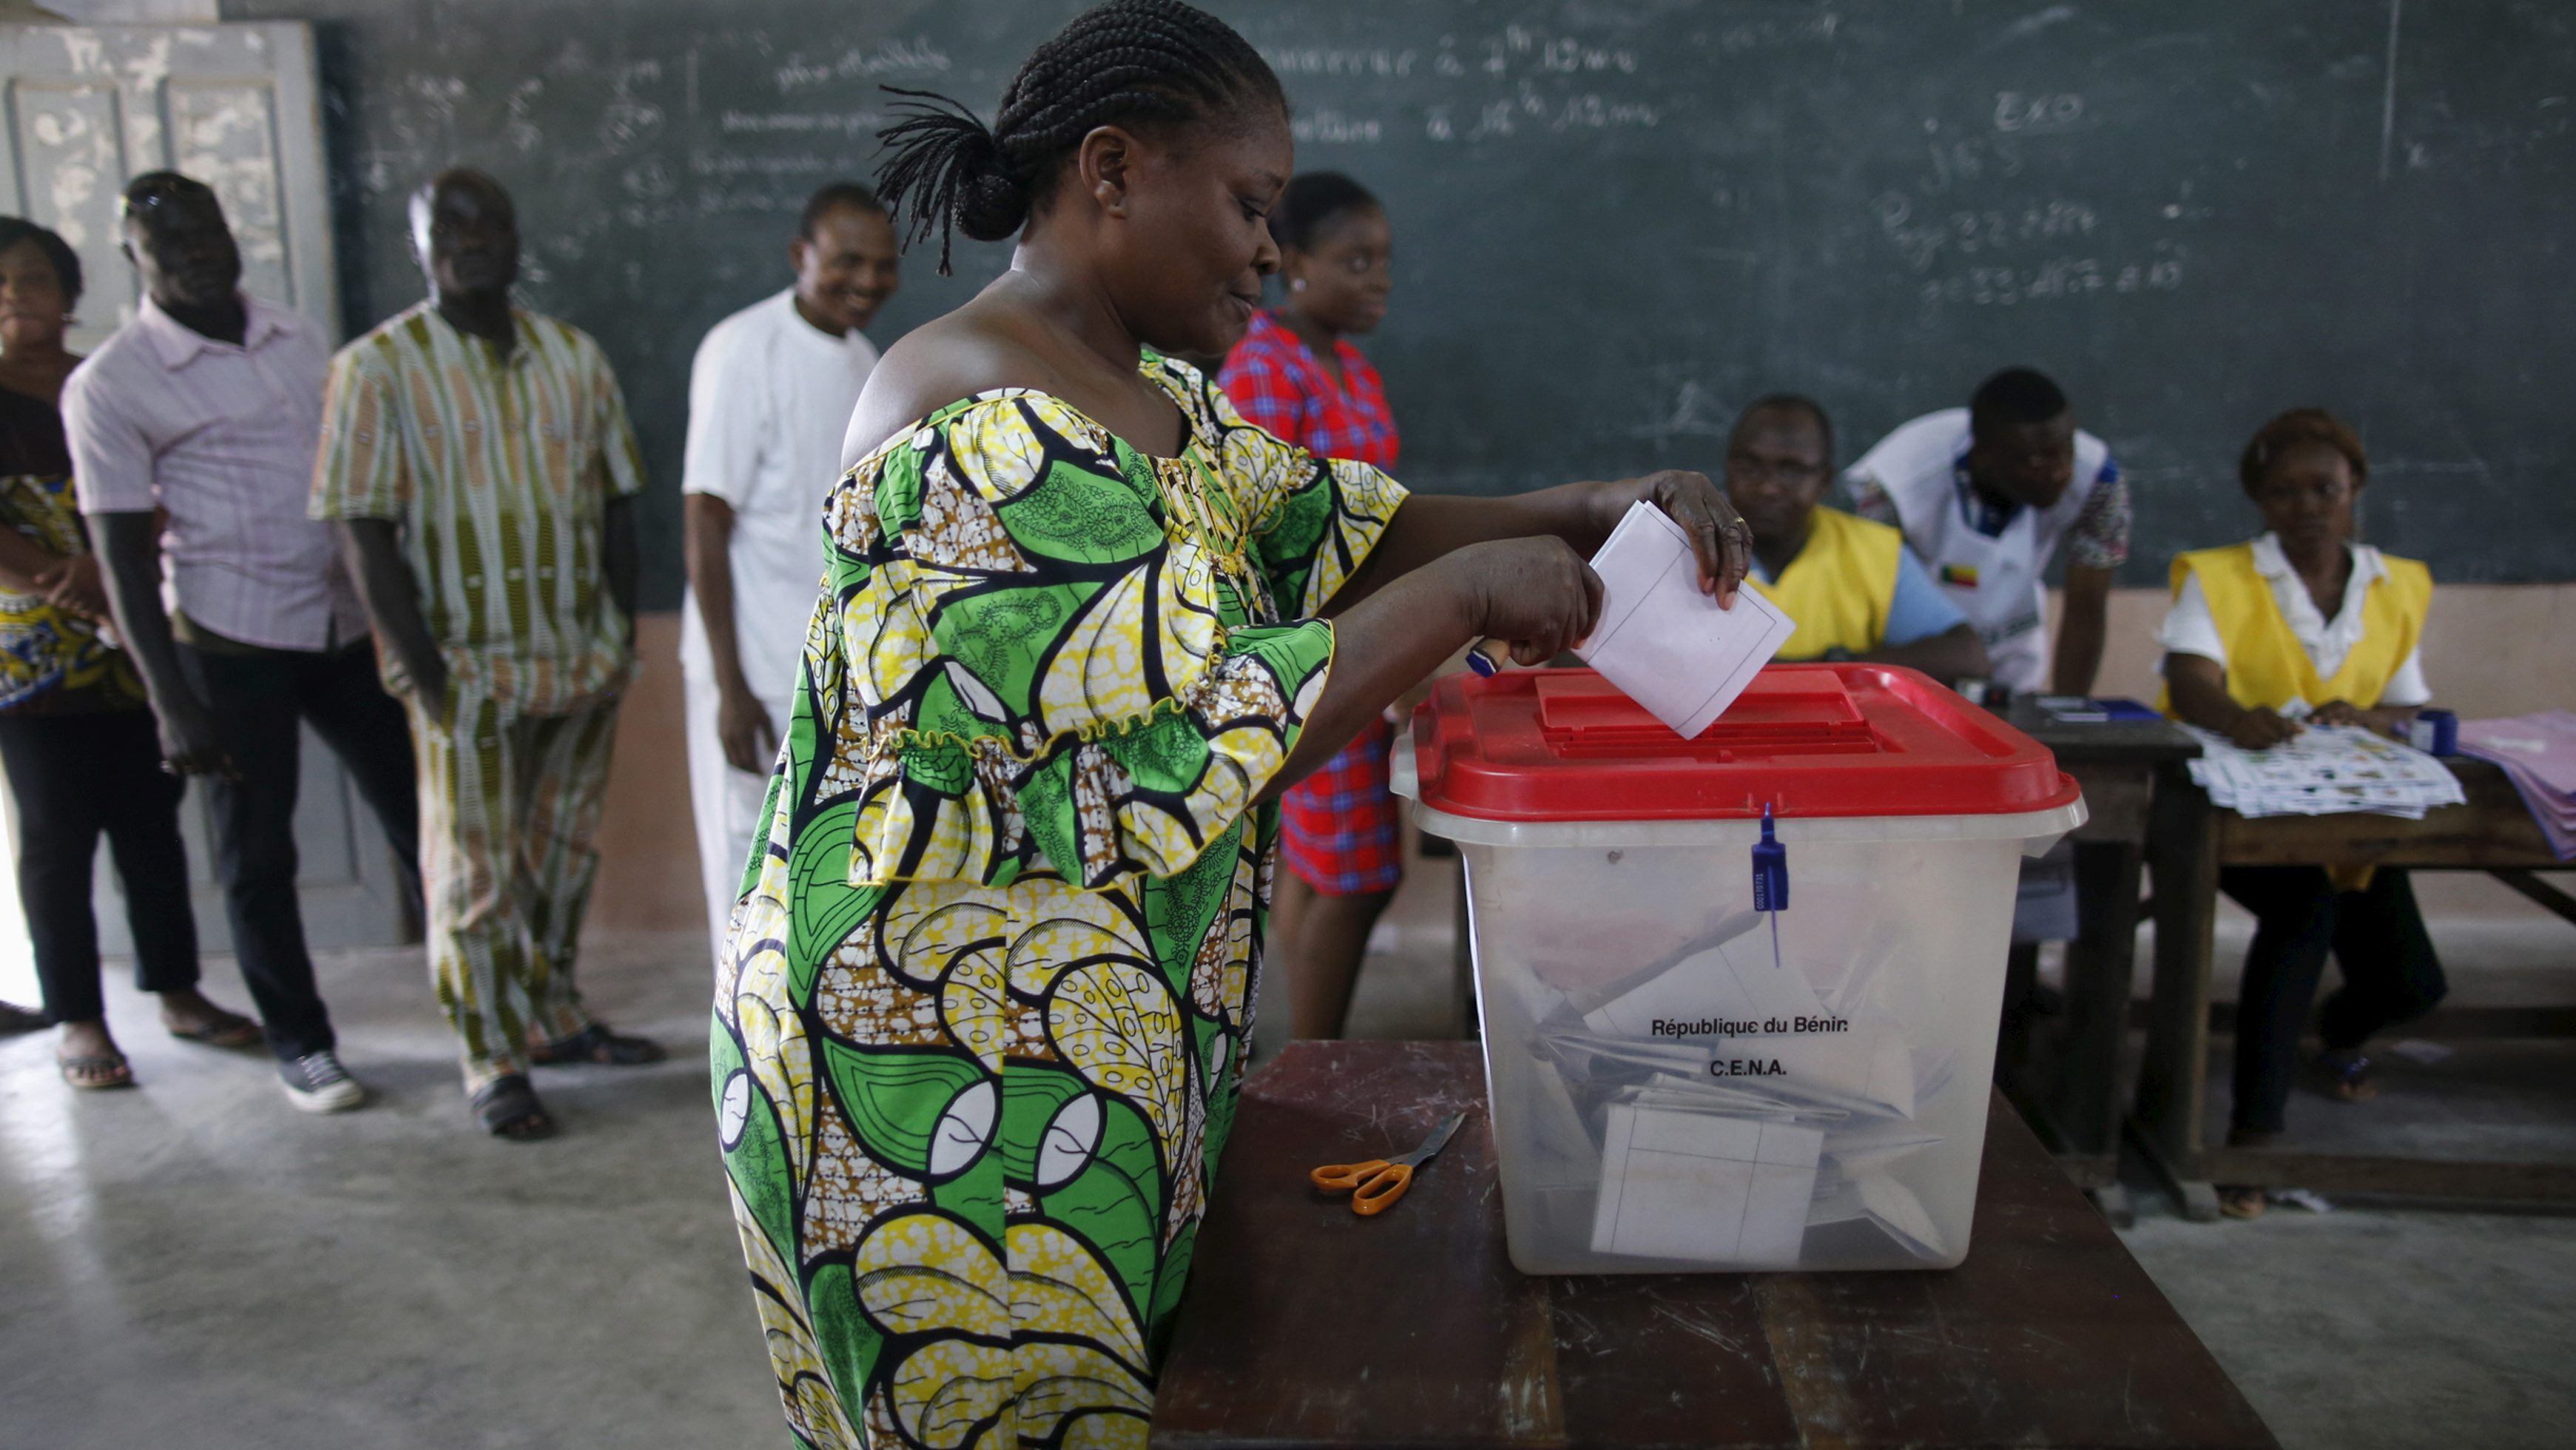 A woman casts her vote during a presidential election at a polling station in Cotonou Benin, March 6, 2016. REUTERS/Akintunde Akinleye - RTS9I4A